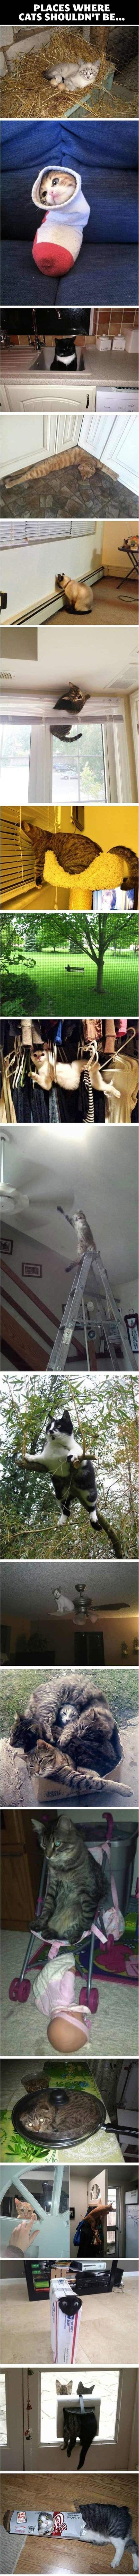 funny-cats-in-places-they-shouldnt-be-meme-jokes-2014